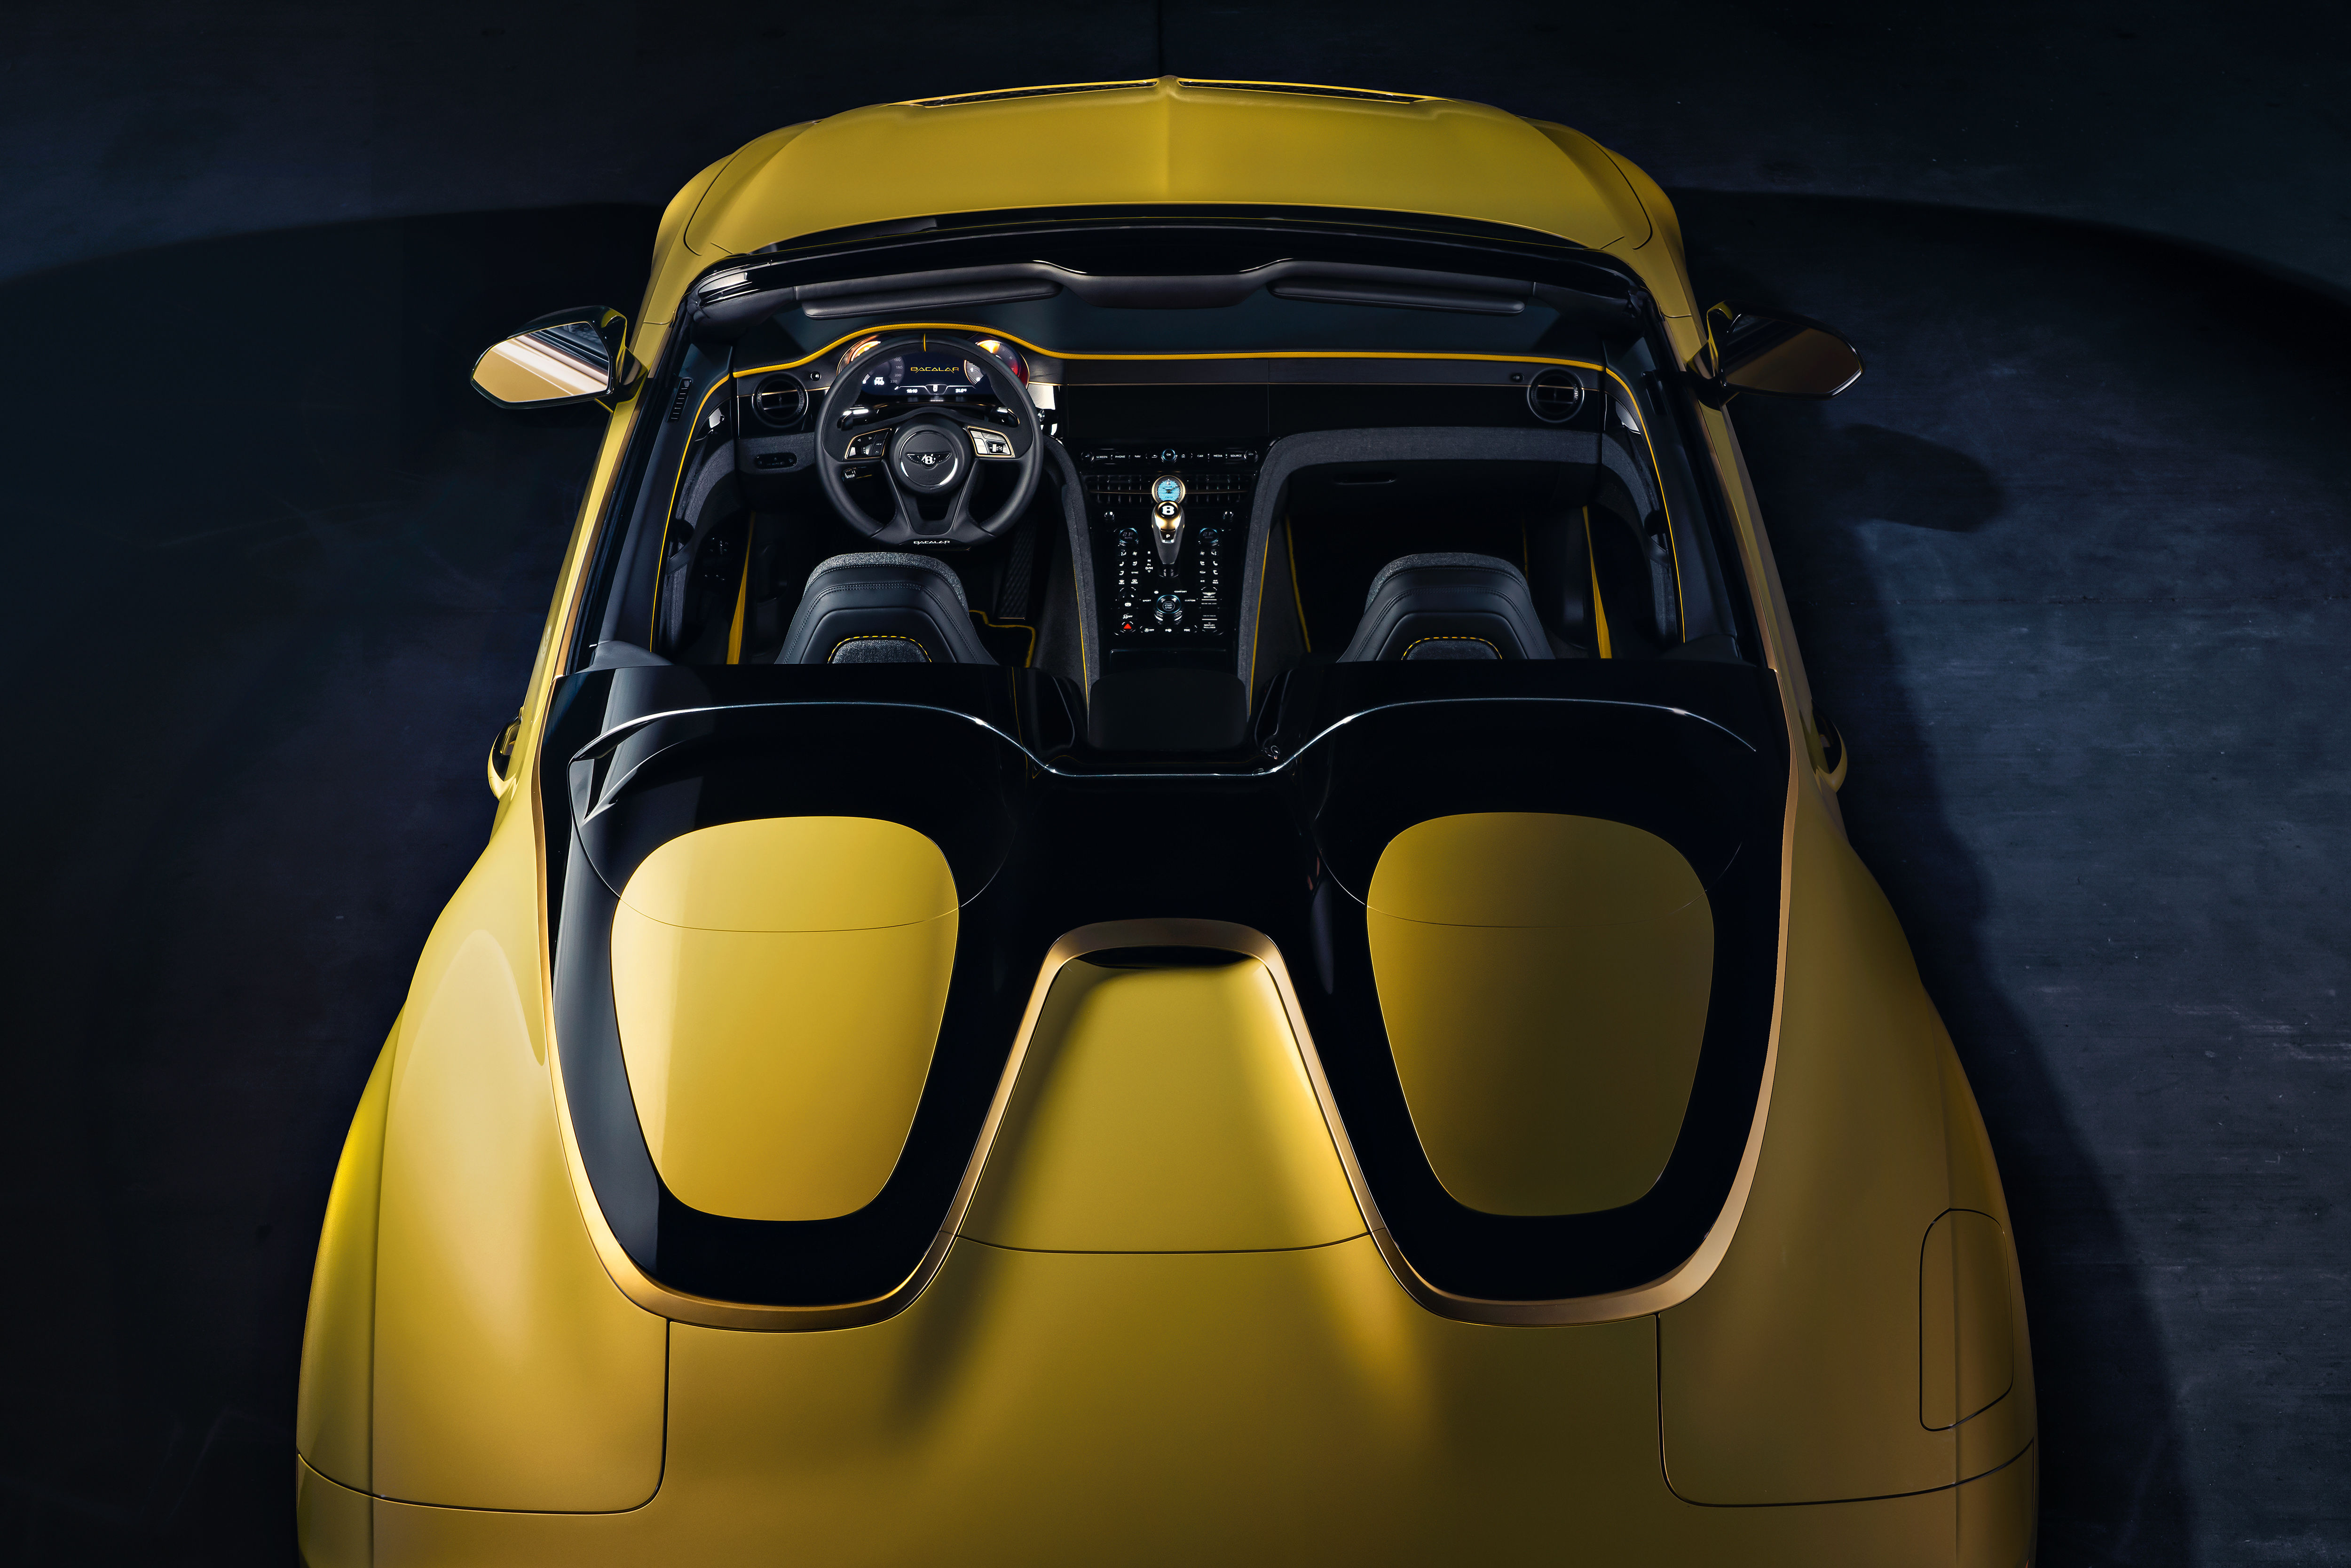 To lighten its weight, the new convertible boasts of two oval-shaped covers on the back of the body.